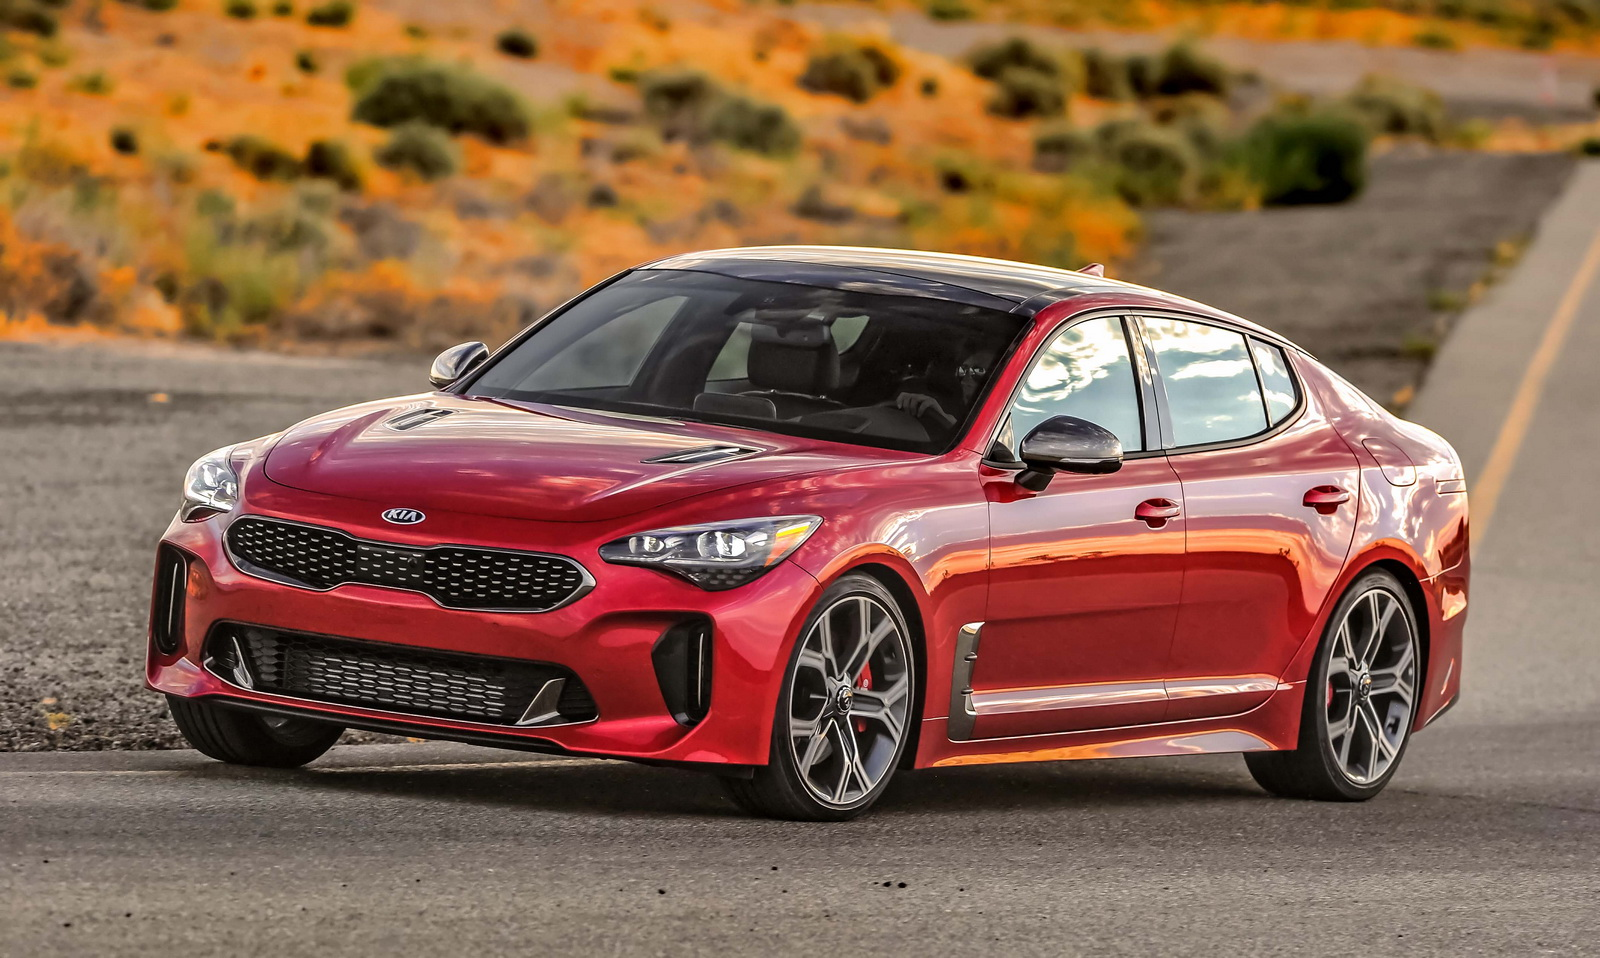 2018 Kia Stinger Lease Deals Start From $382* A Month ...